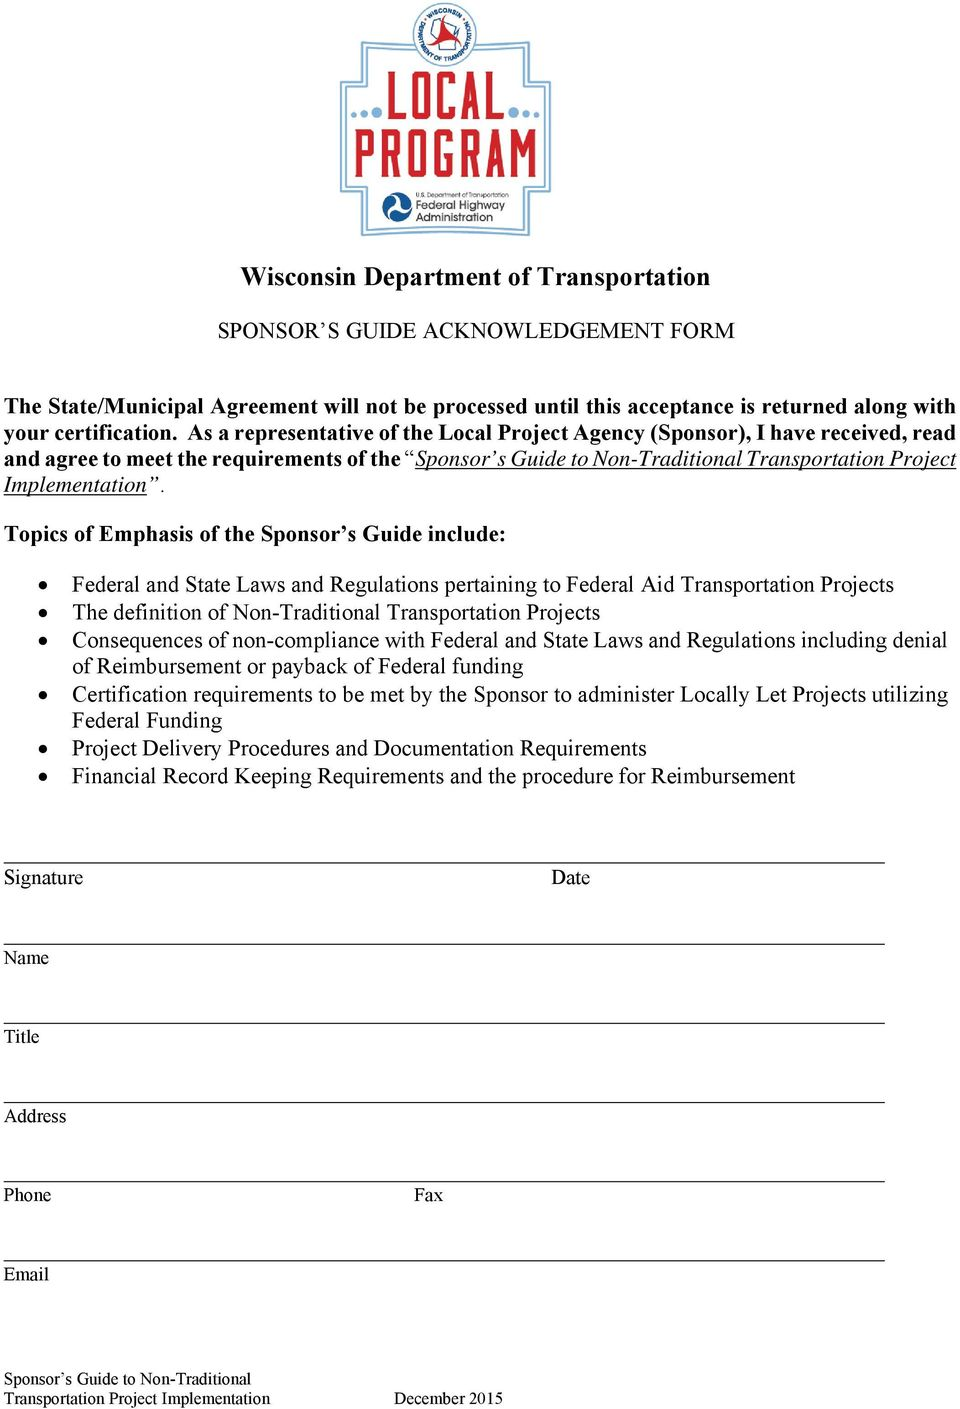 Sponsor's Guide To Non-Traditional Transportation Project